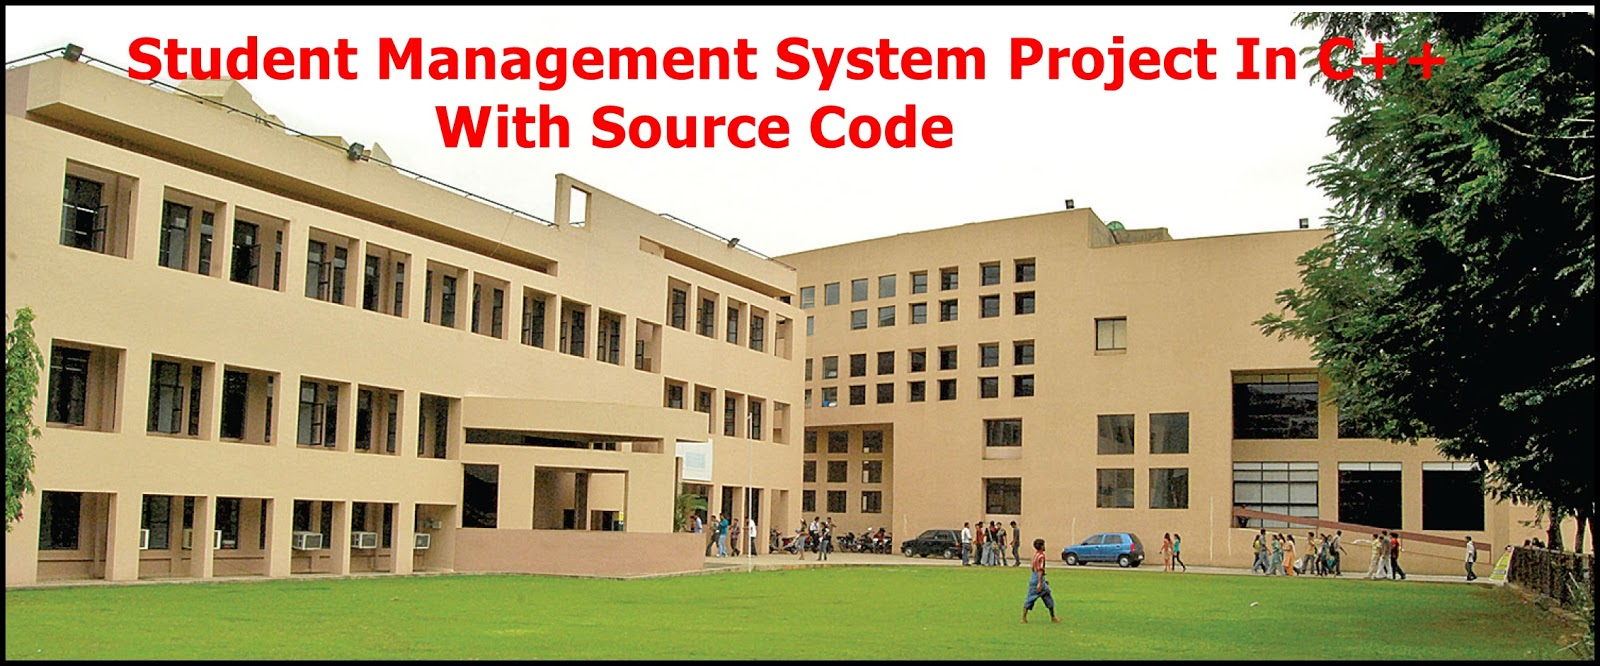 C++ Project For Student Management System (SMS PROJECT) With Source Code